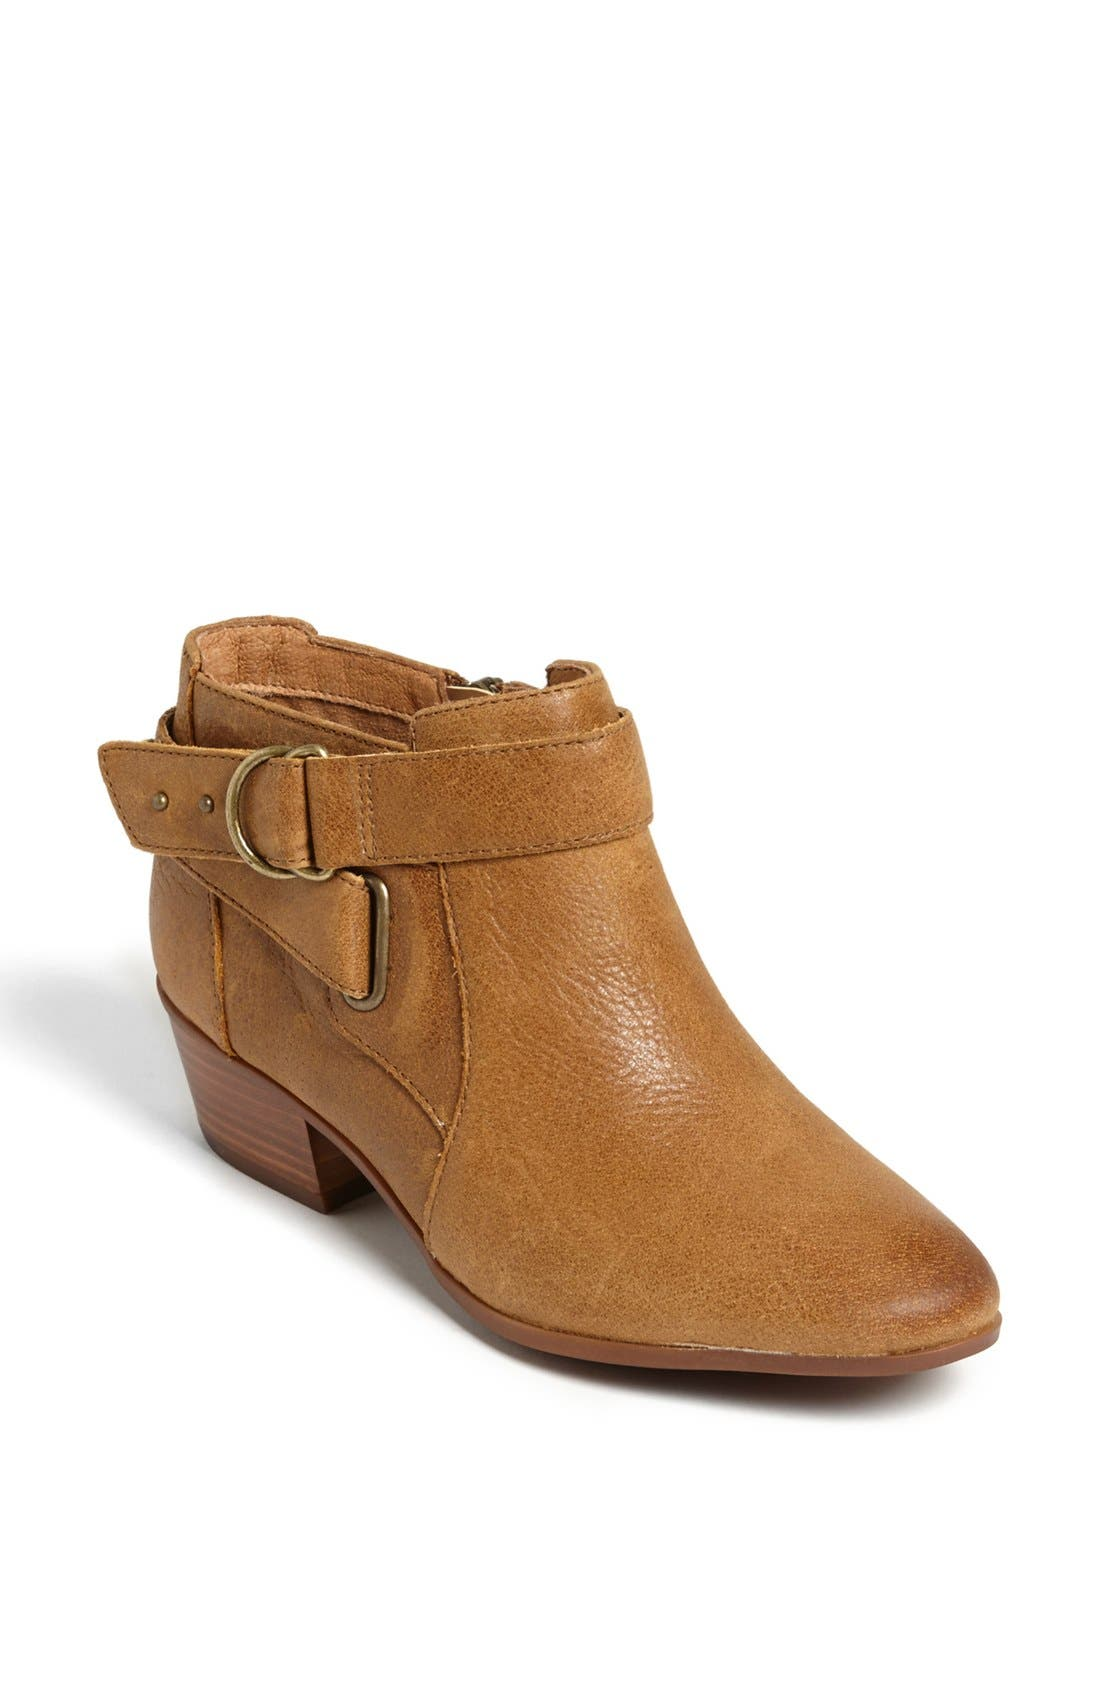 Alternate Image 1 Selected - Clarks® 'Spye Belle' Bootie